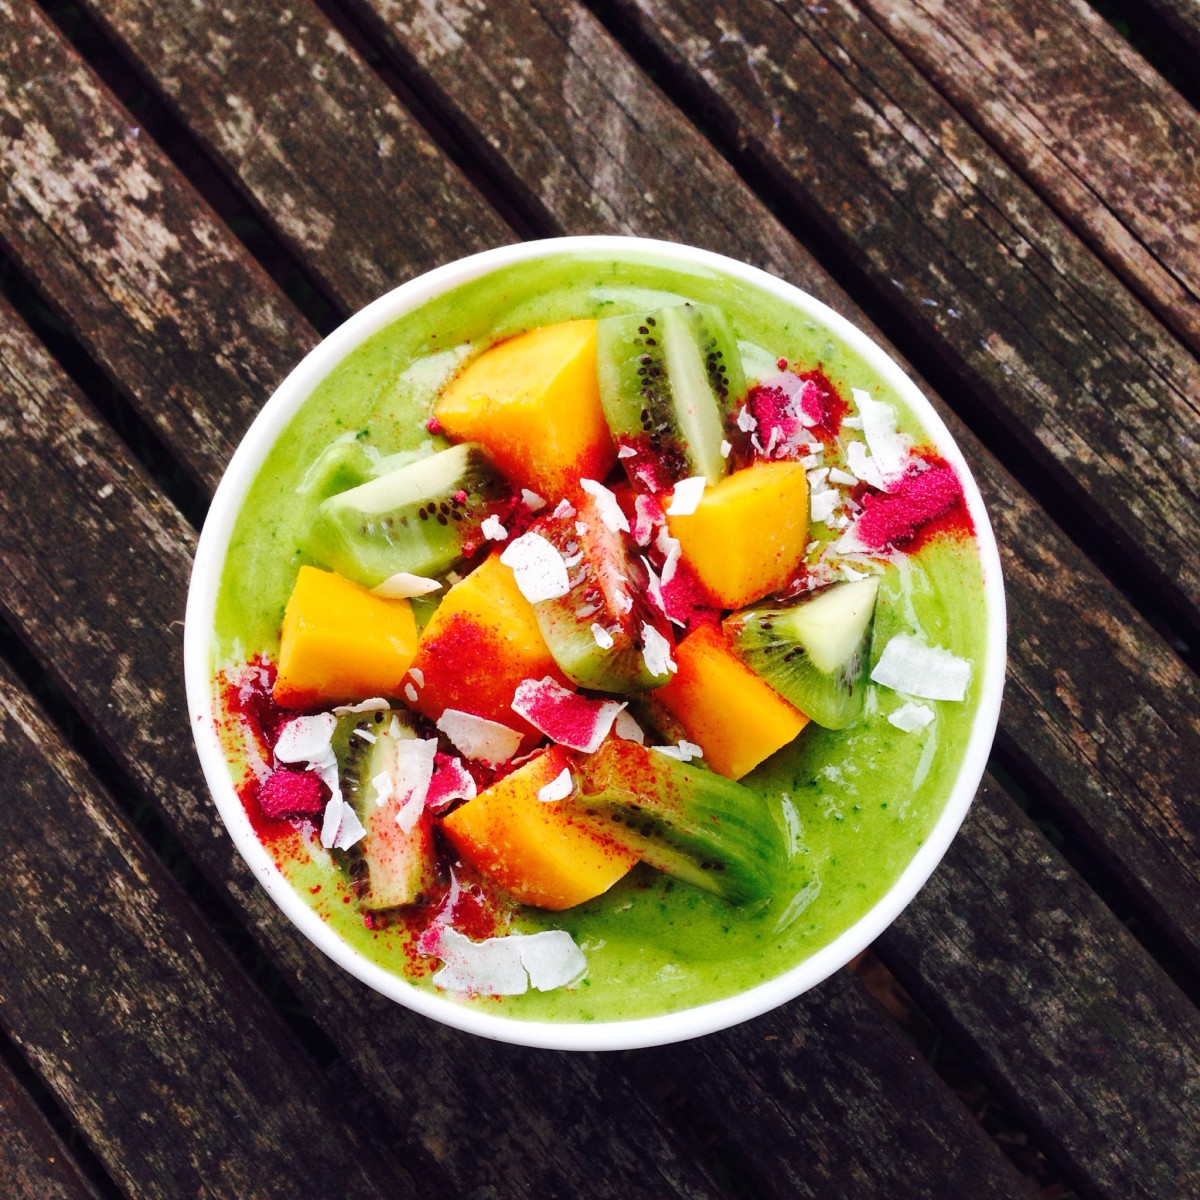 Green smoothie bowl topped with fresh fruit and coconut.